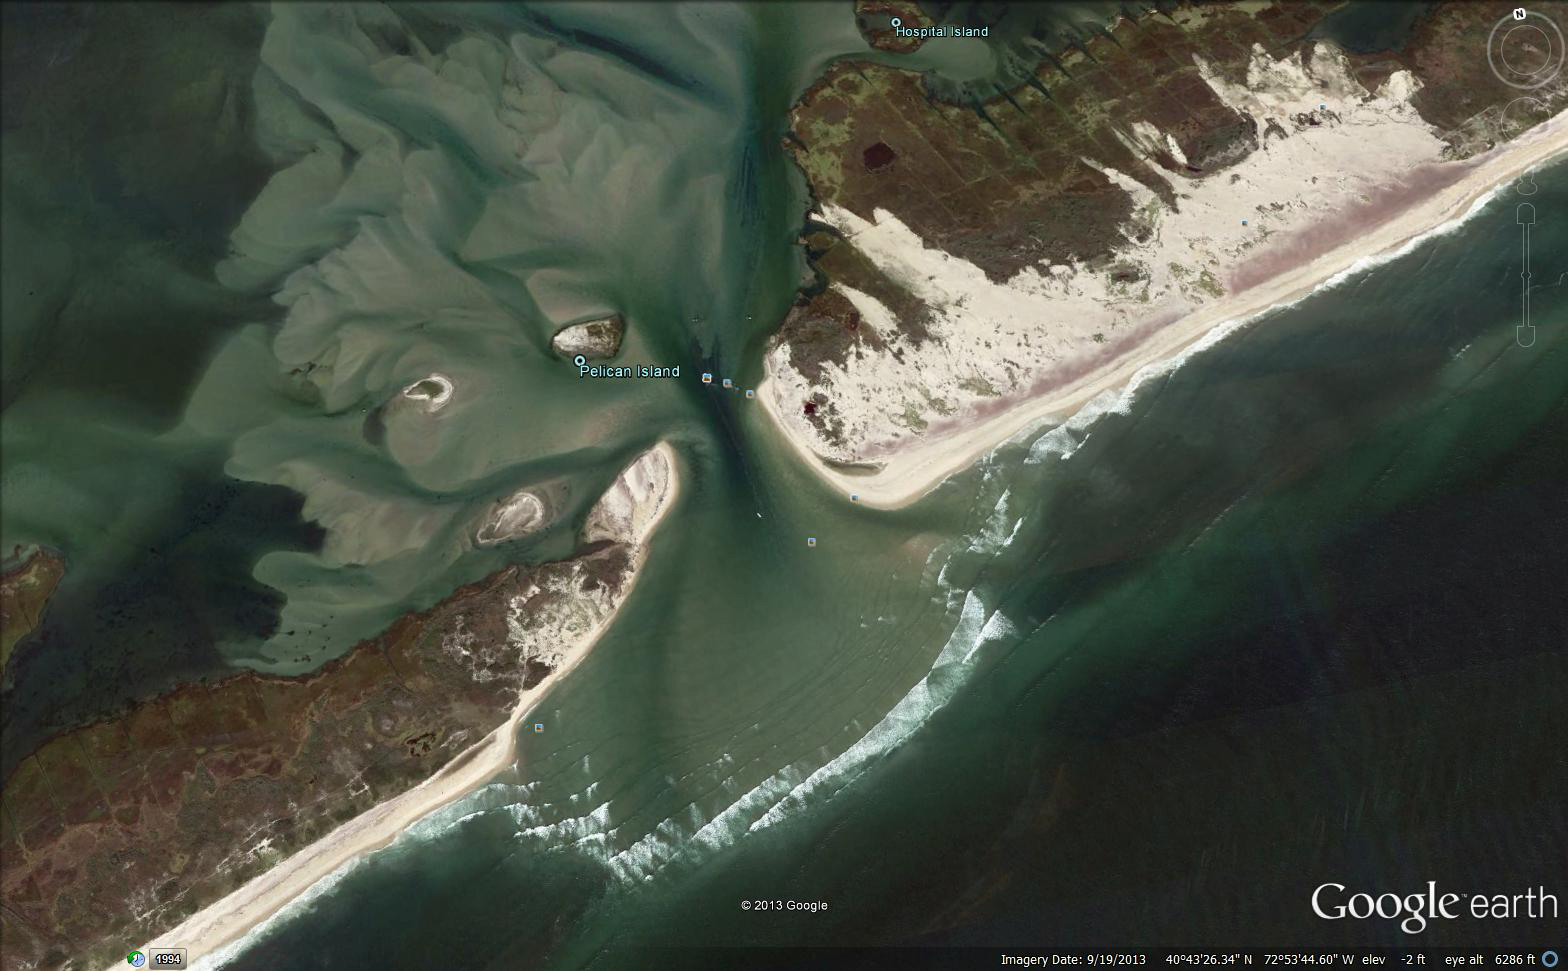 This aerial view shows the new inlet on New York's Fire Island and large areas of sand pushed over vegetation by Hurricane Sandy. Image generated from Google Earth.